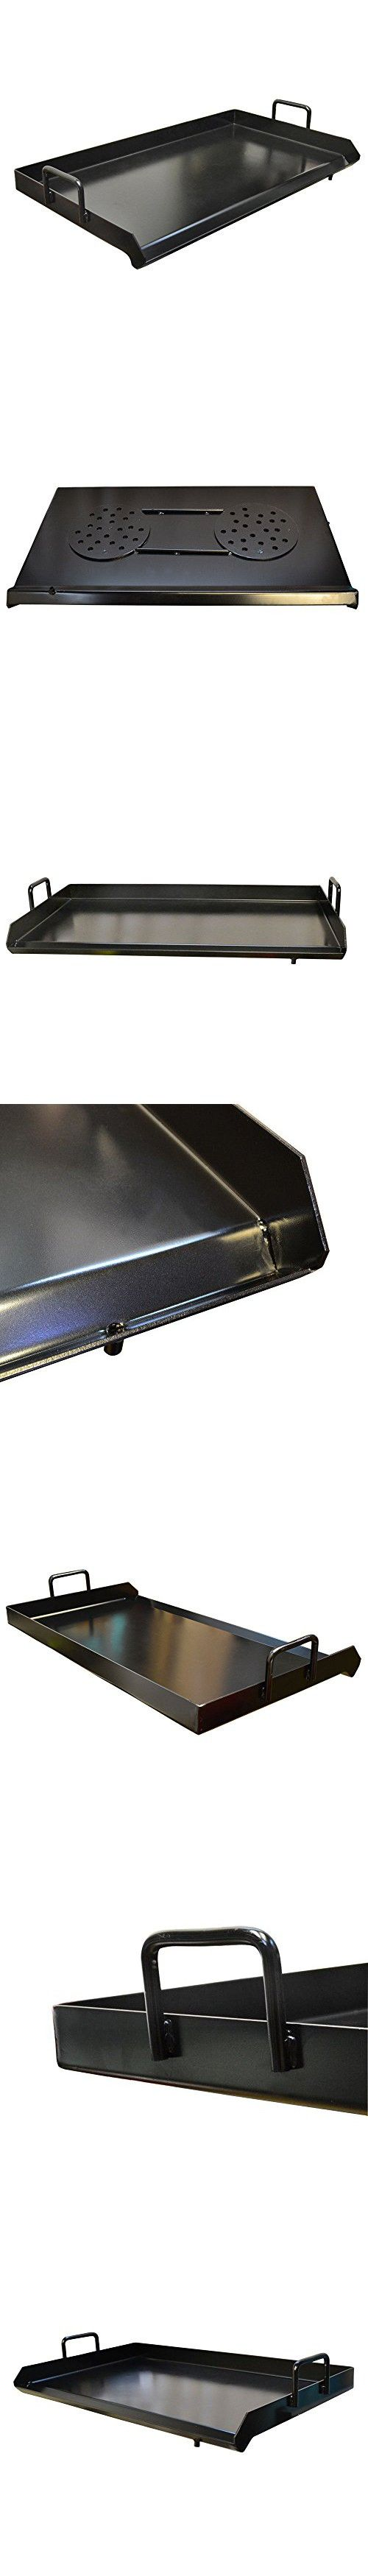 best 25 flat top griddle ideas on pinterest kitchen appliances